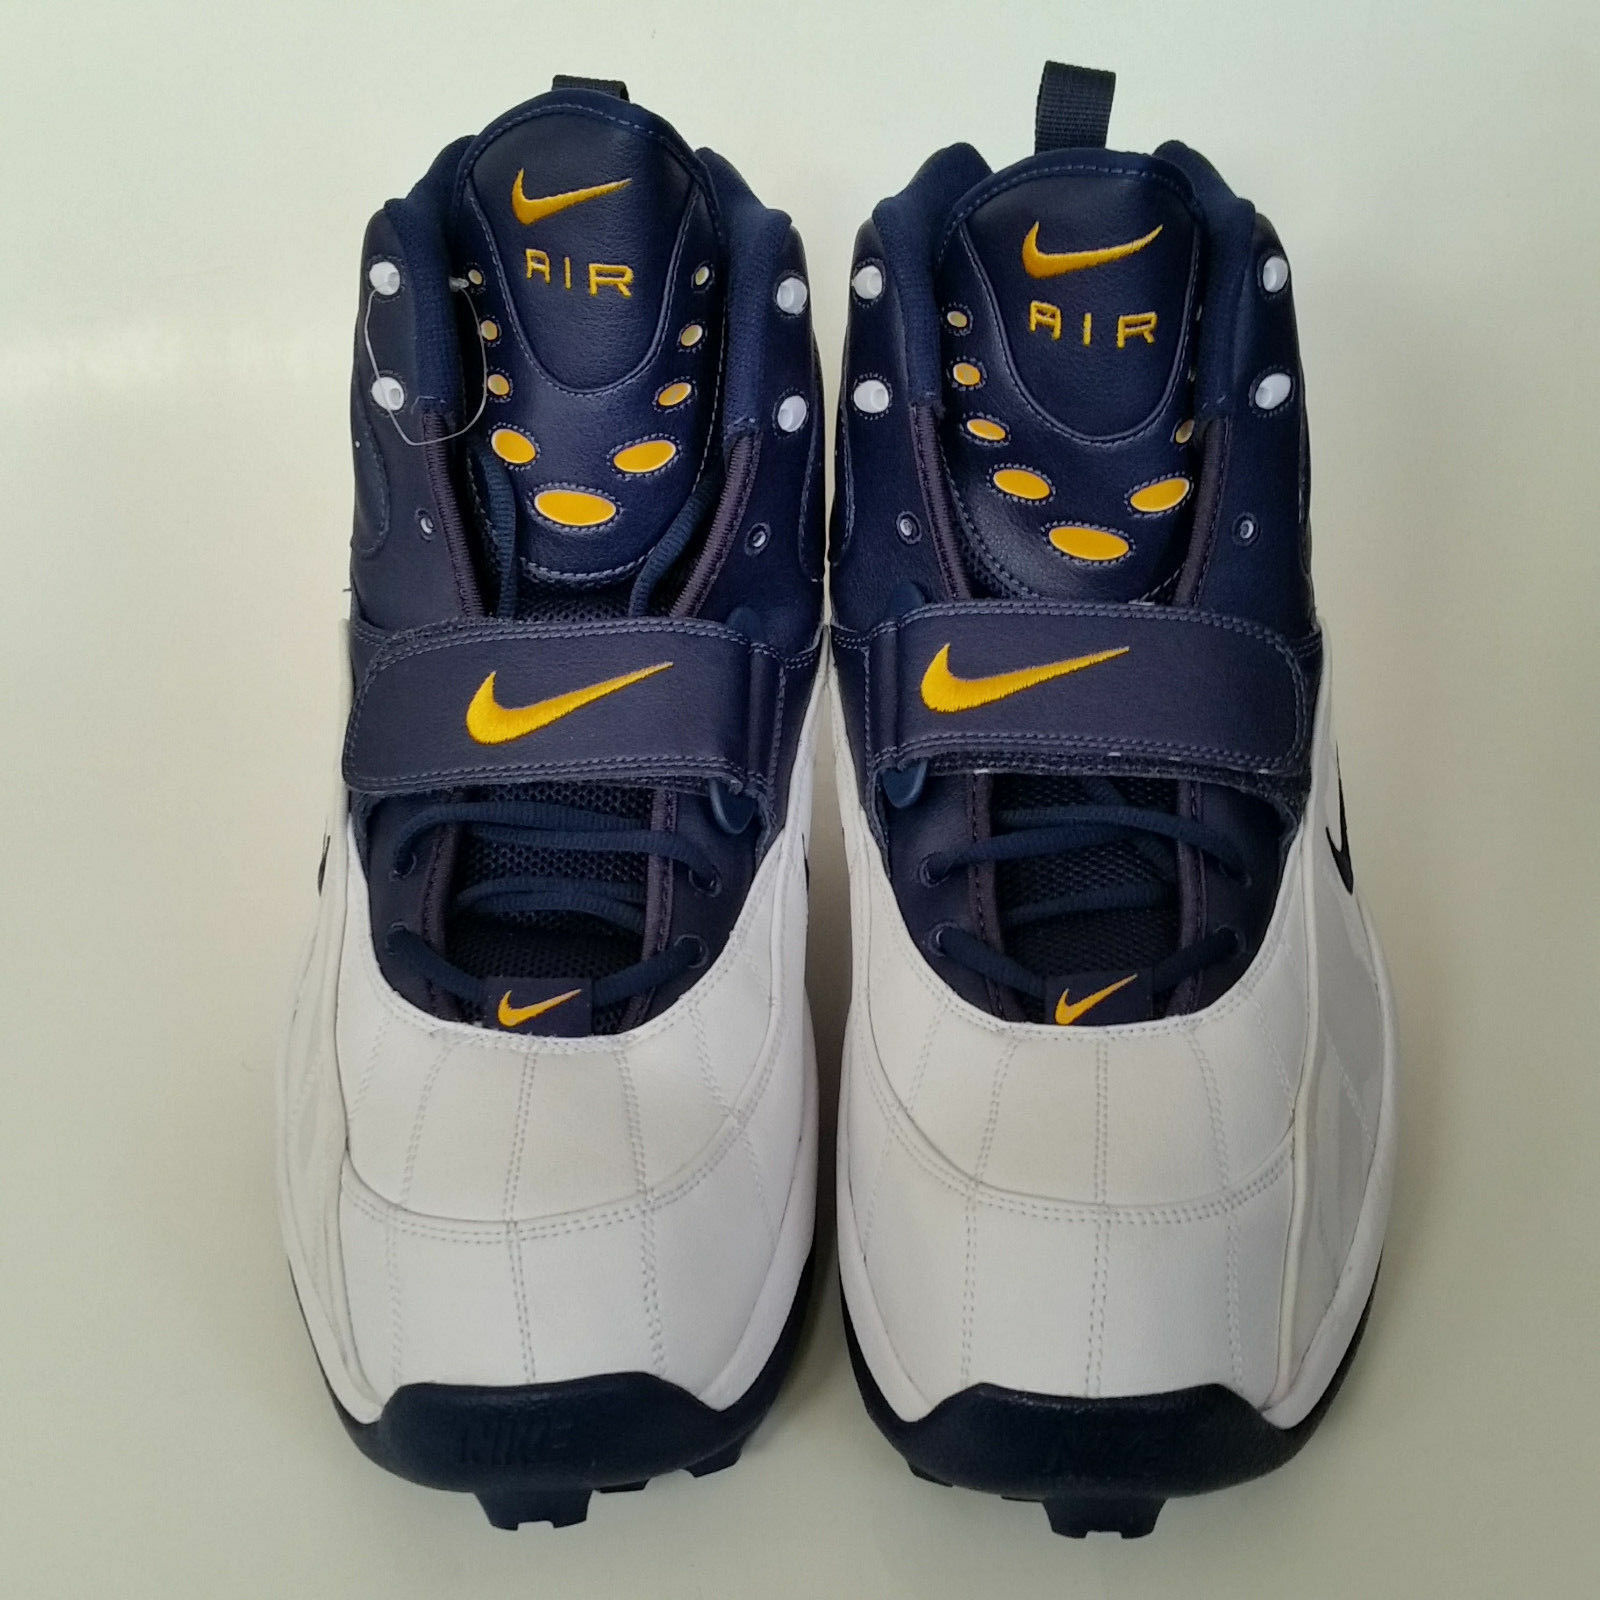 Nike air zoom (lo squalo 3 / 4 lineman michigan football scarpe taglia 18 michigan lineman wolverines 134282